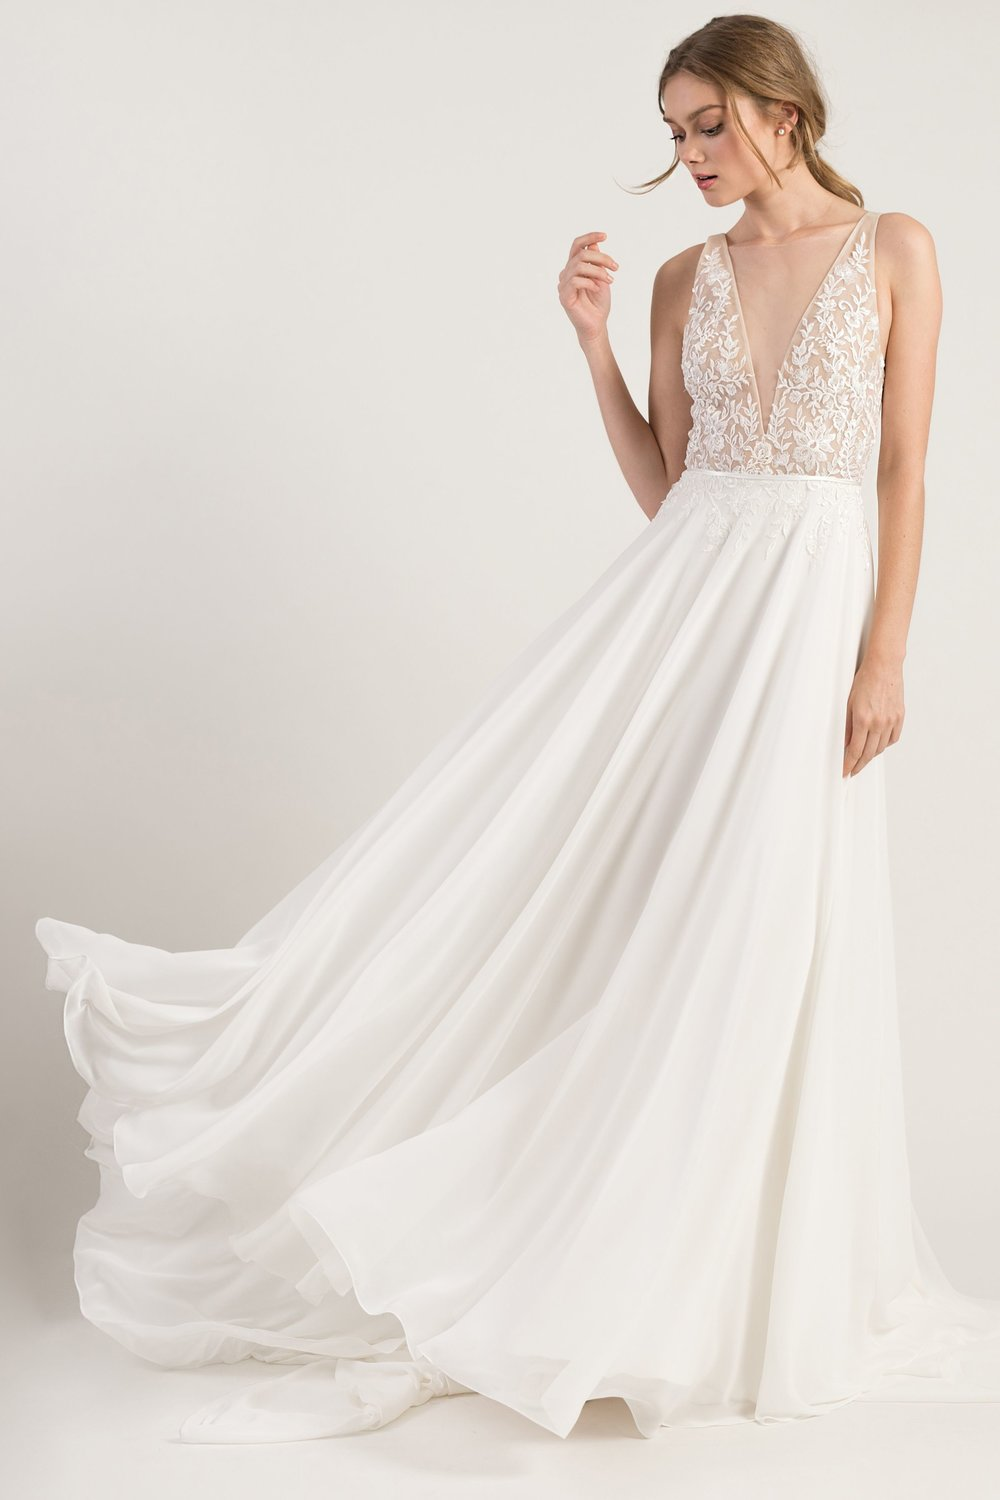 Jenny Yoo Martina Bohemian Chic Wedding Dress